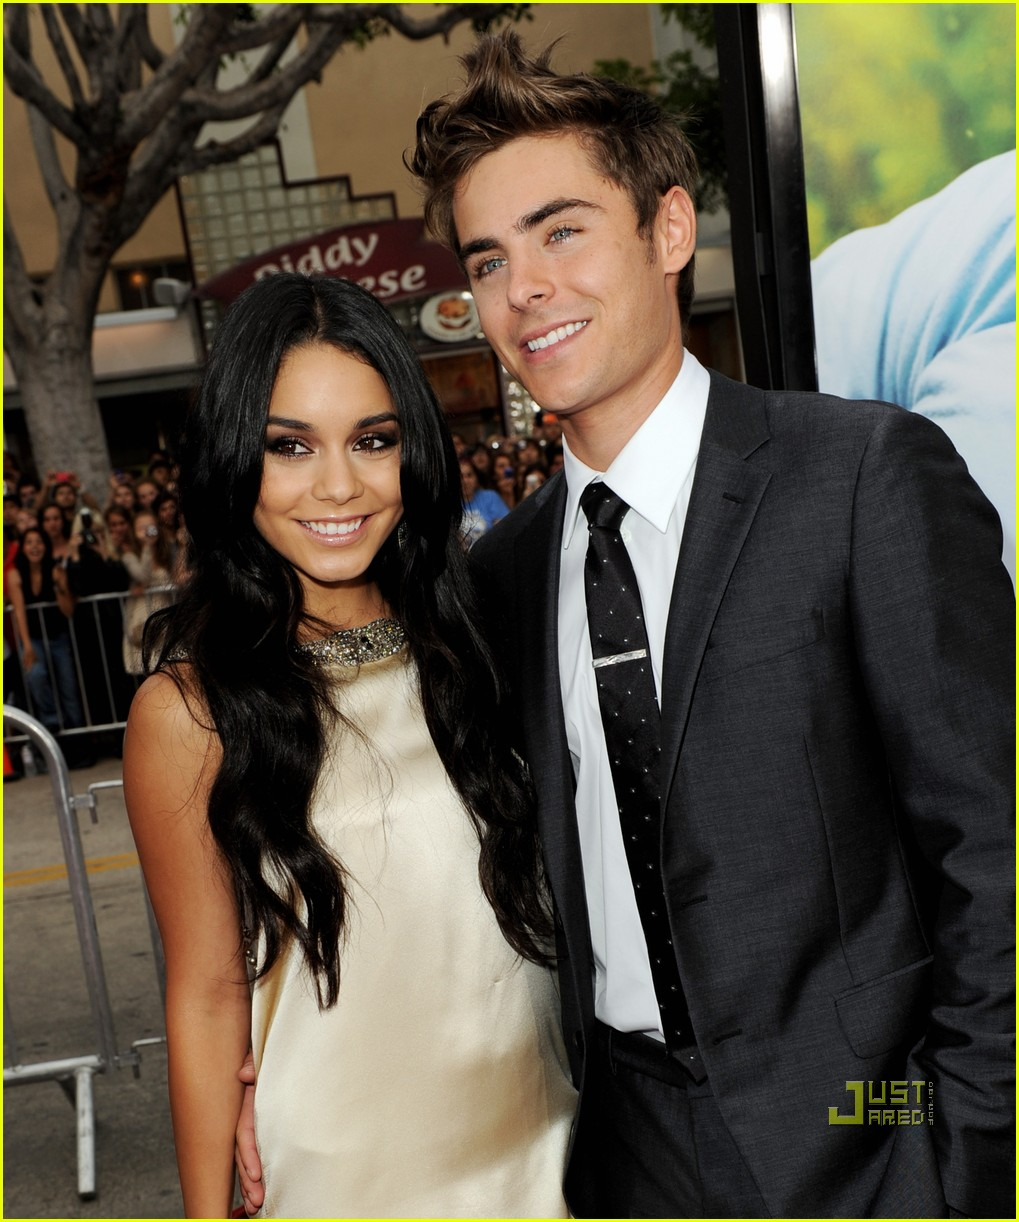 is Vanessa Hudgens And Zac Efron Engaged 2010 Vanessa Hudgens Zac Efron